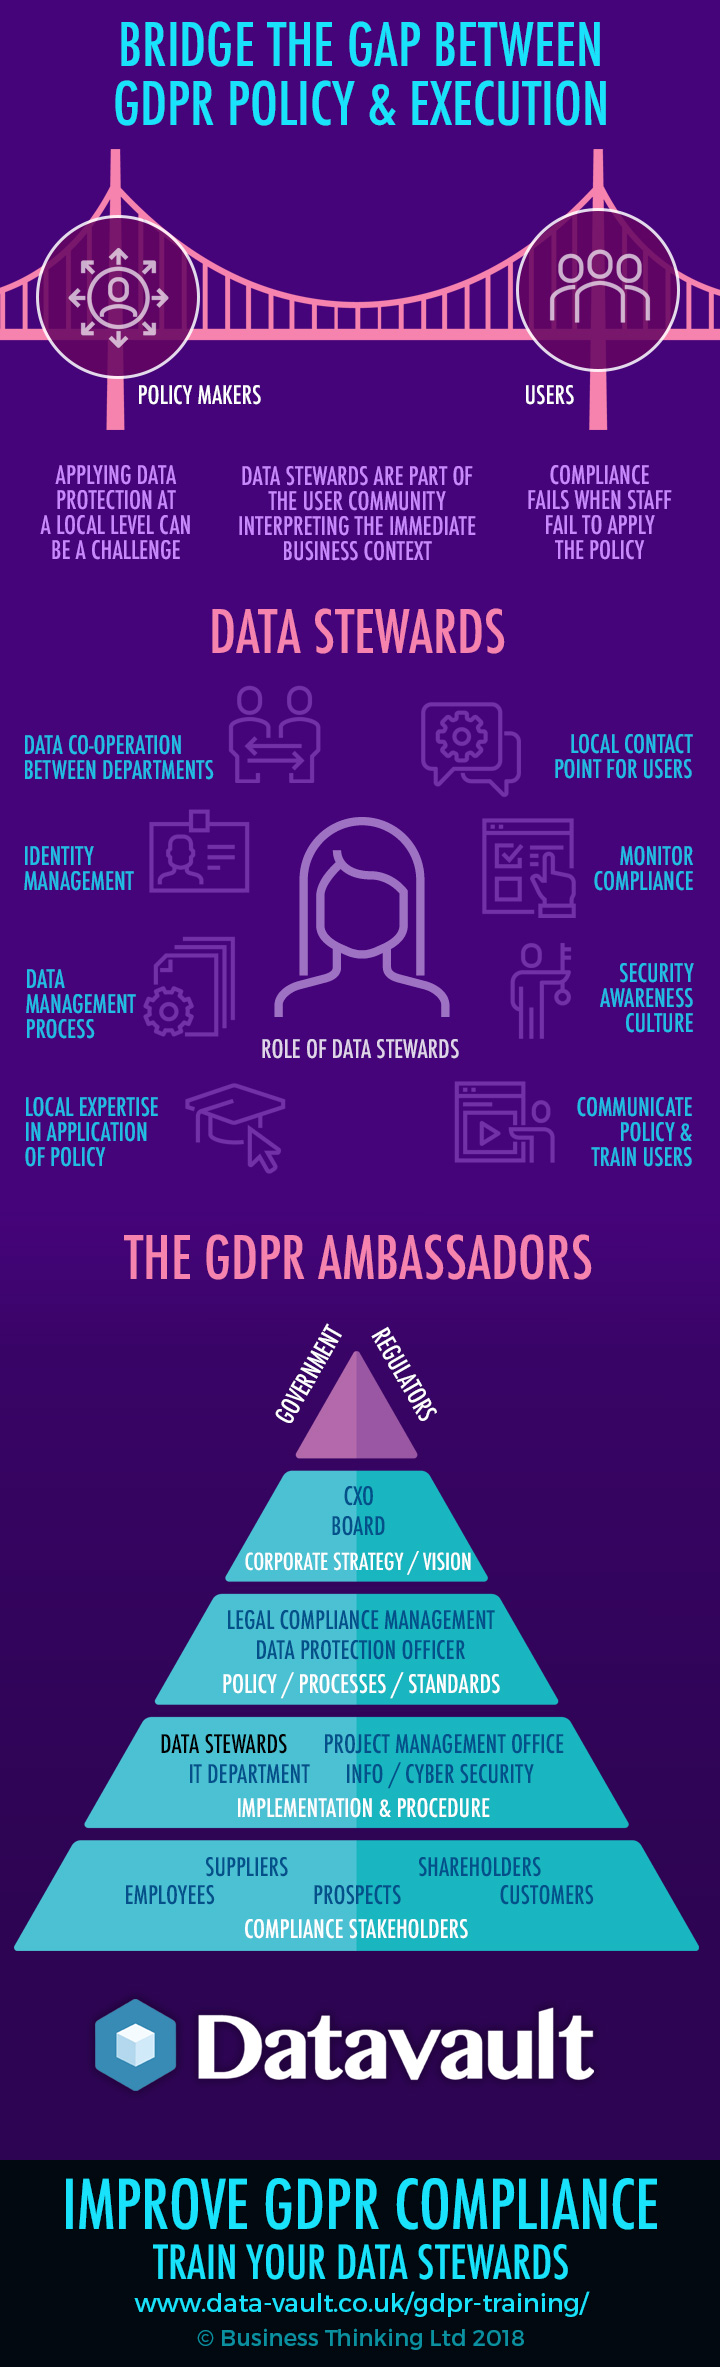 Data Stewards GDPR Ambassadors Infographic